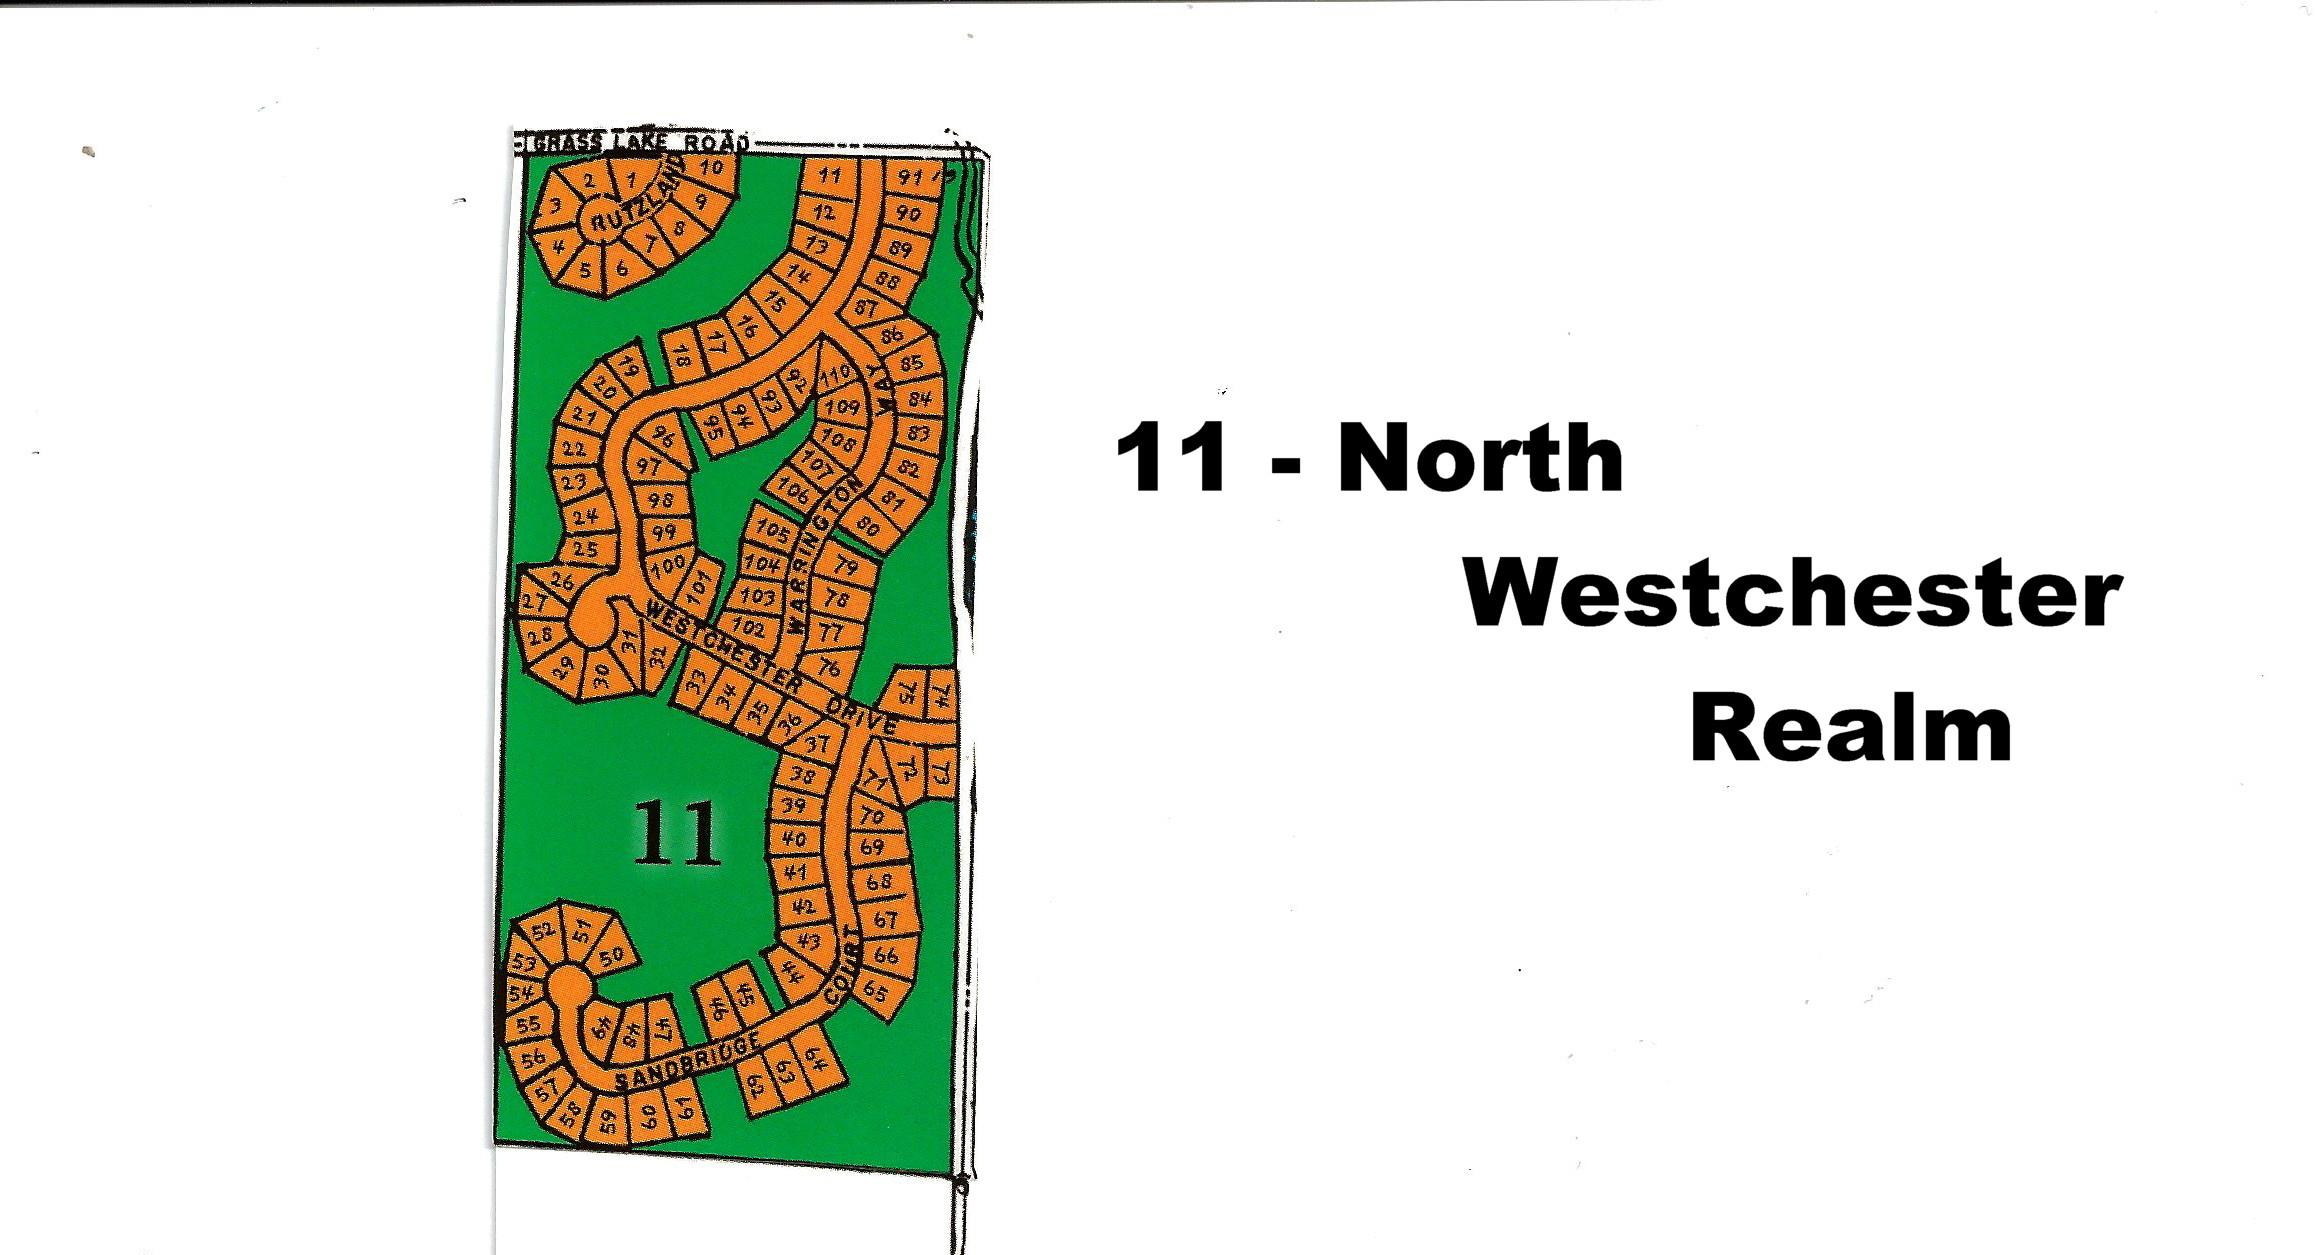 11  - N WESTCHESTER REALM (NW)